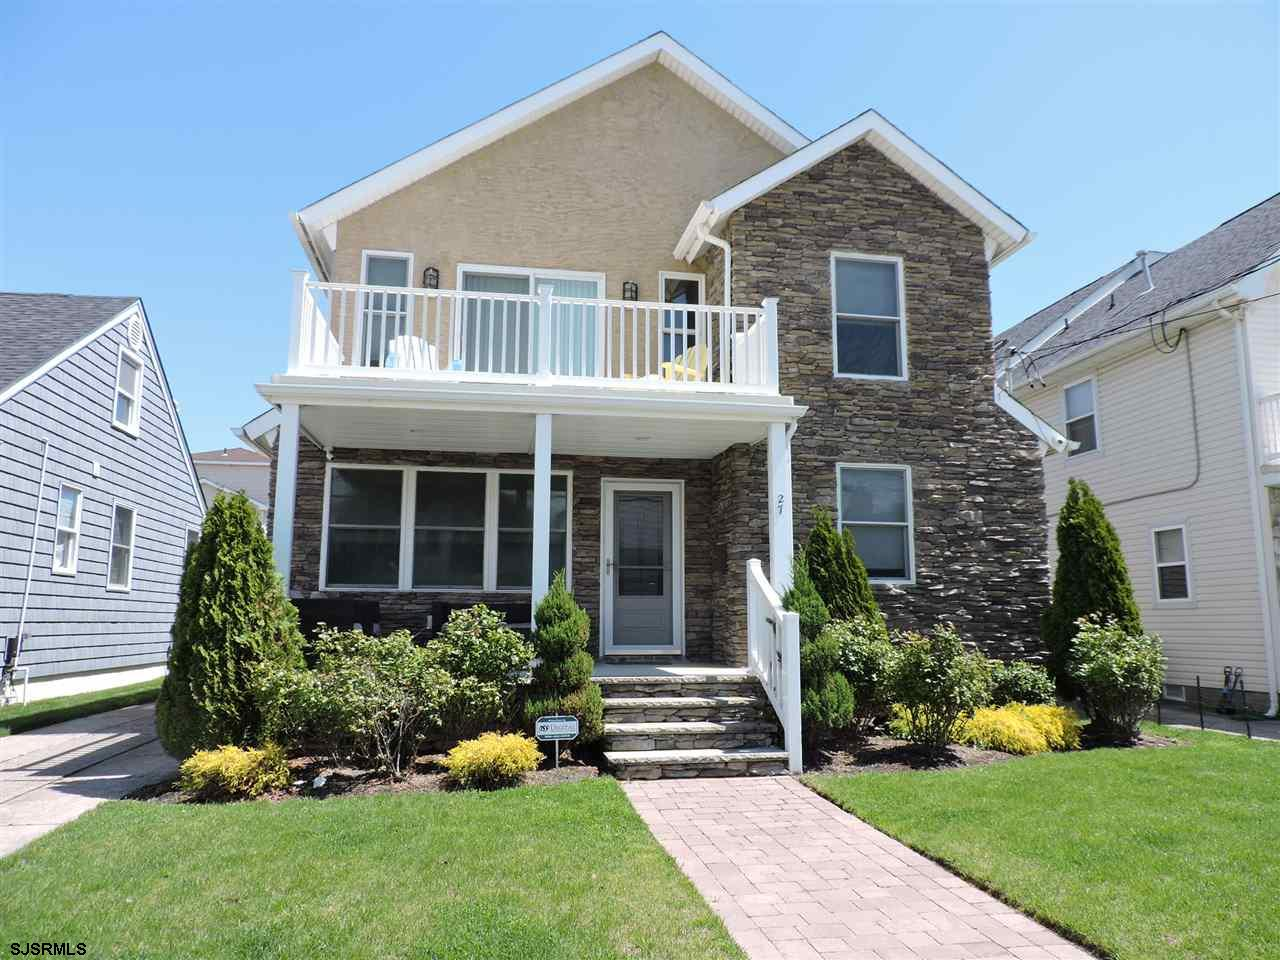 27 S Benson Ave, Margate, NJ 08402